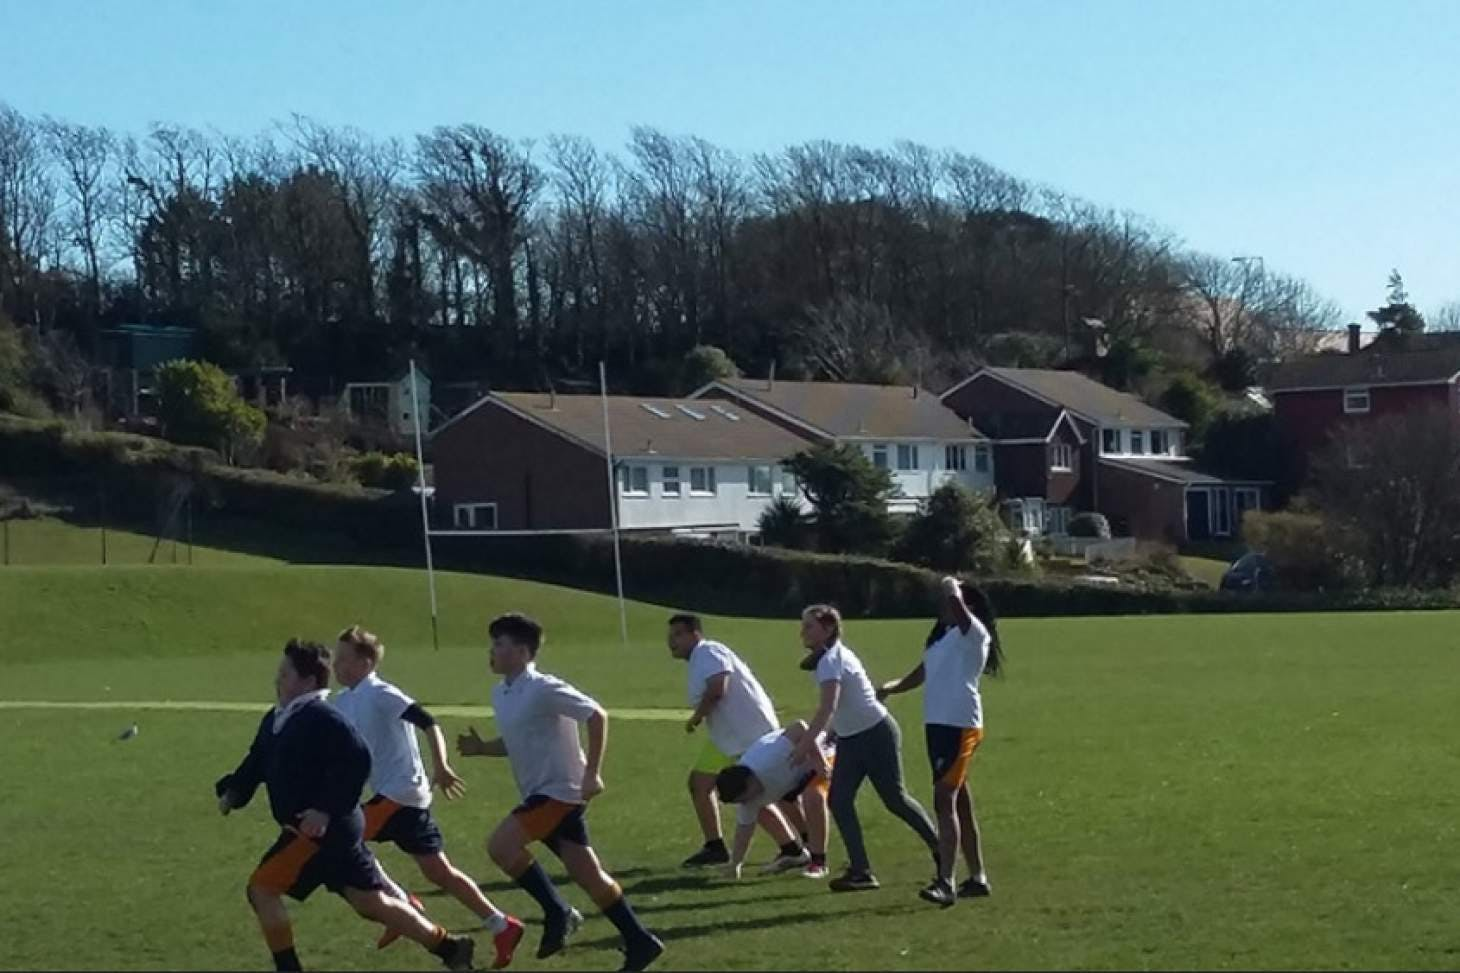 Longhill Sports Centre Union | Grass rugby pitch